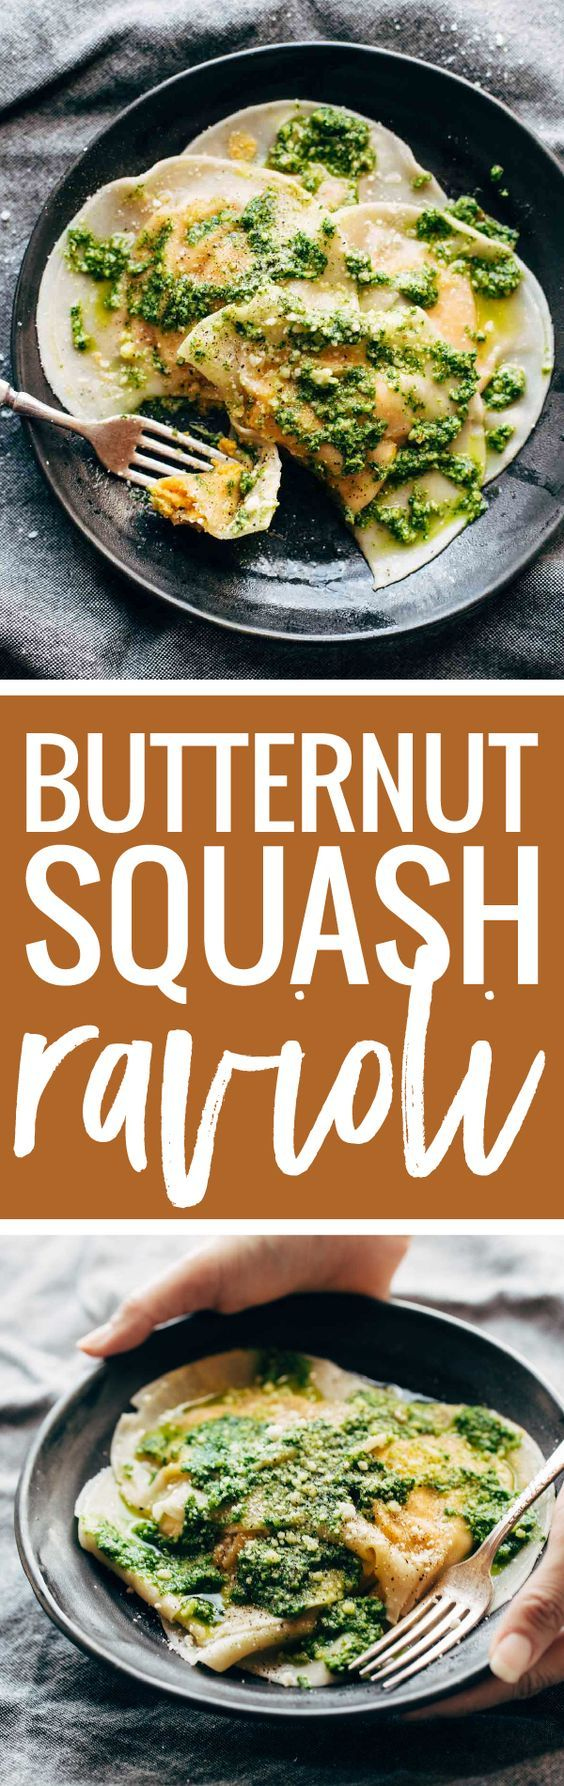 Butternut Squash Ravioli made with WONTON WRAPPERS! Seriously that easy and so, so good. Awesome meatless dinner idea! | pinchofyum.com